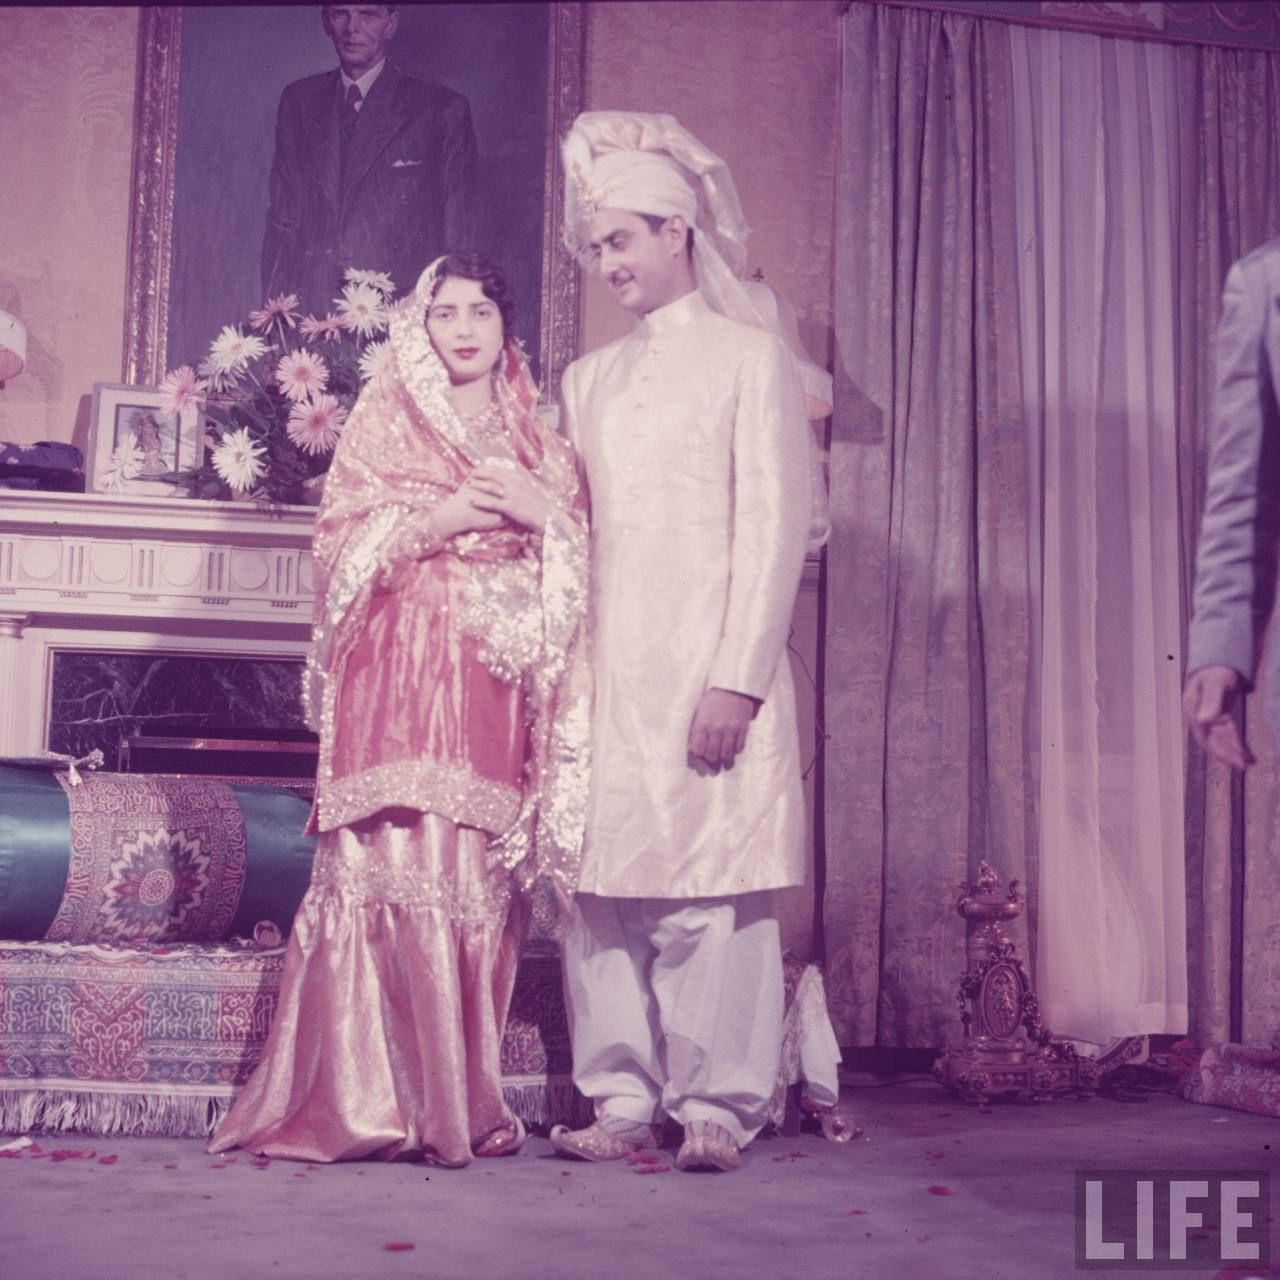 Vintage Wedding Dresses Usa: Wedding Ceremony Of Syed Babar Ali At Pakistan Embassy In